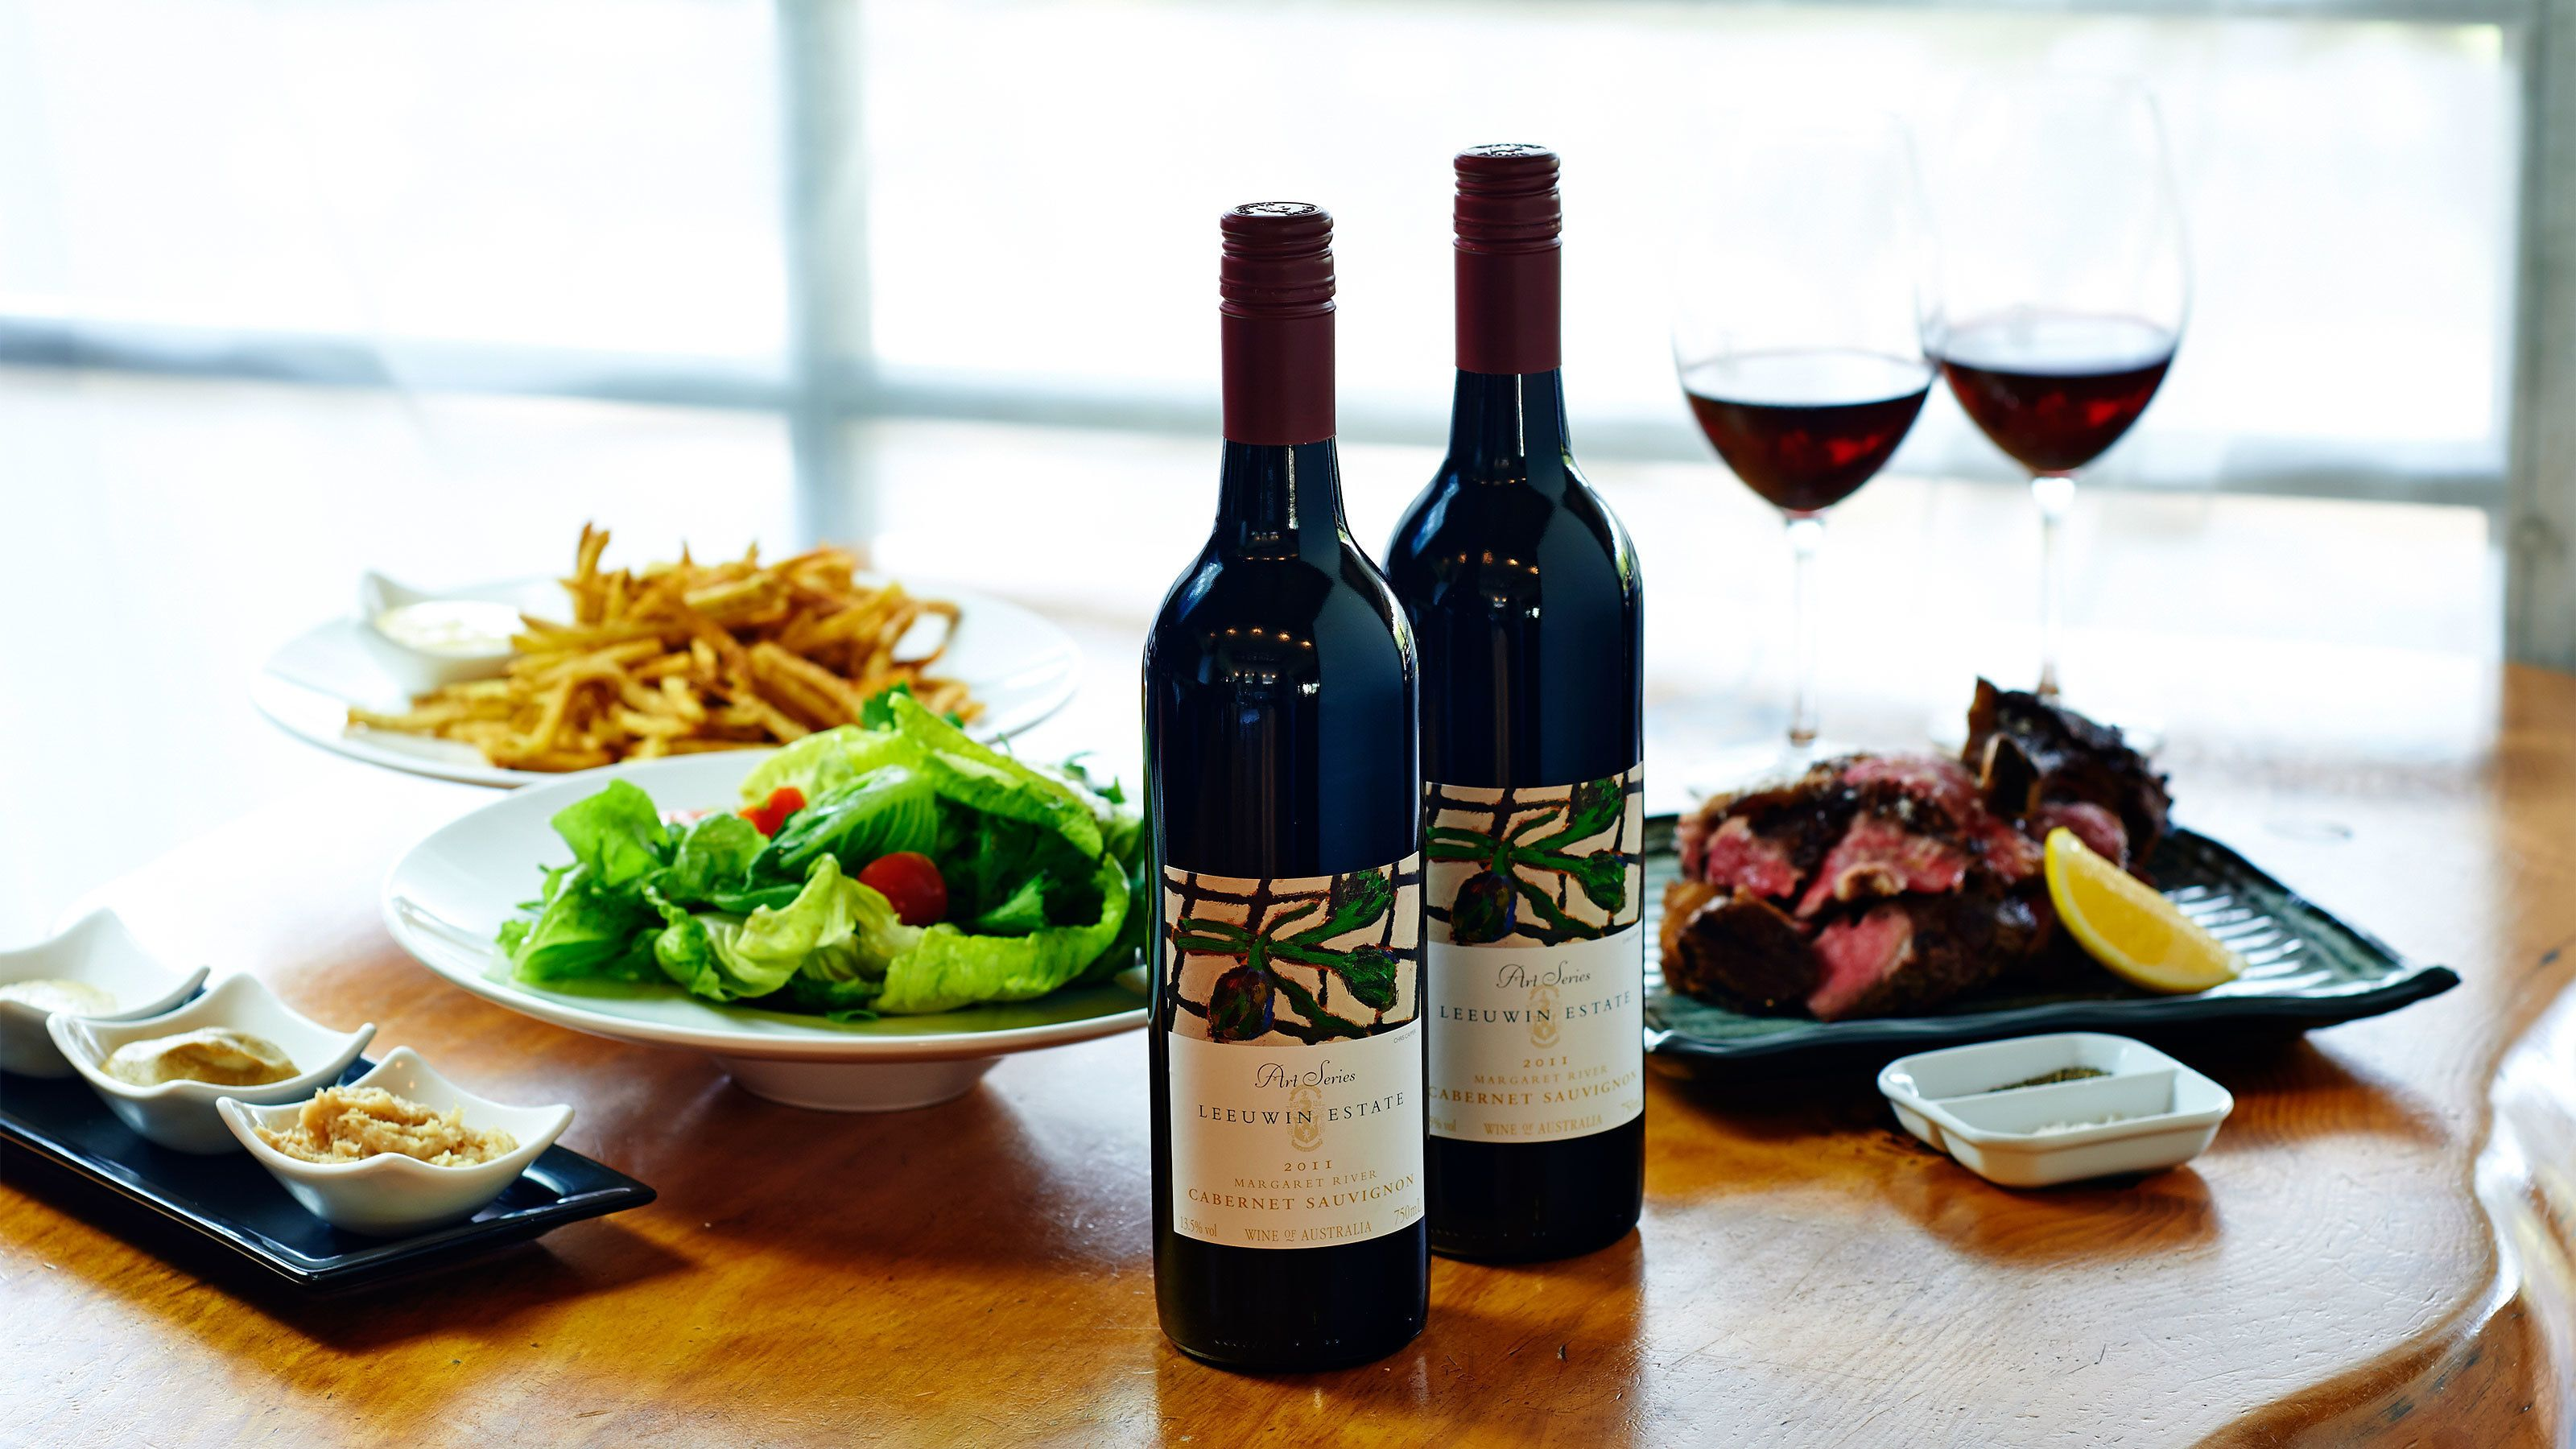 Close up of wooden table with two bottles of red wine, two filled glasses, and food.